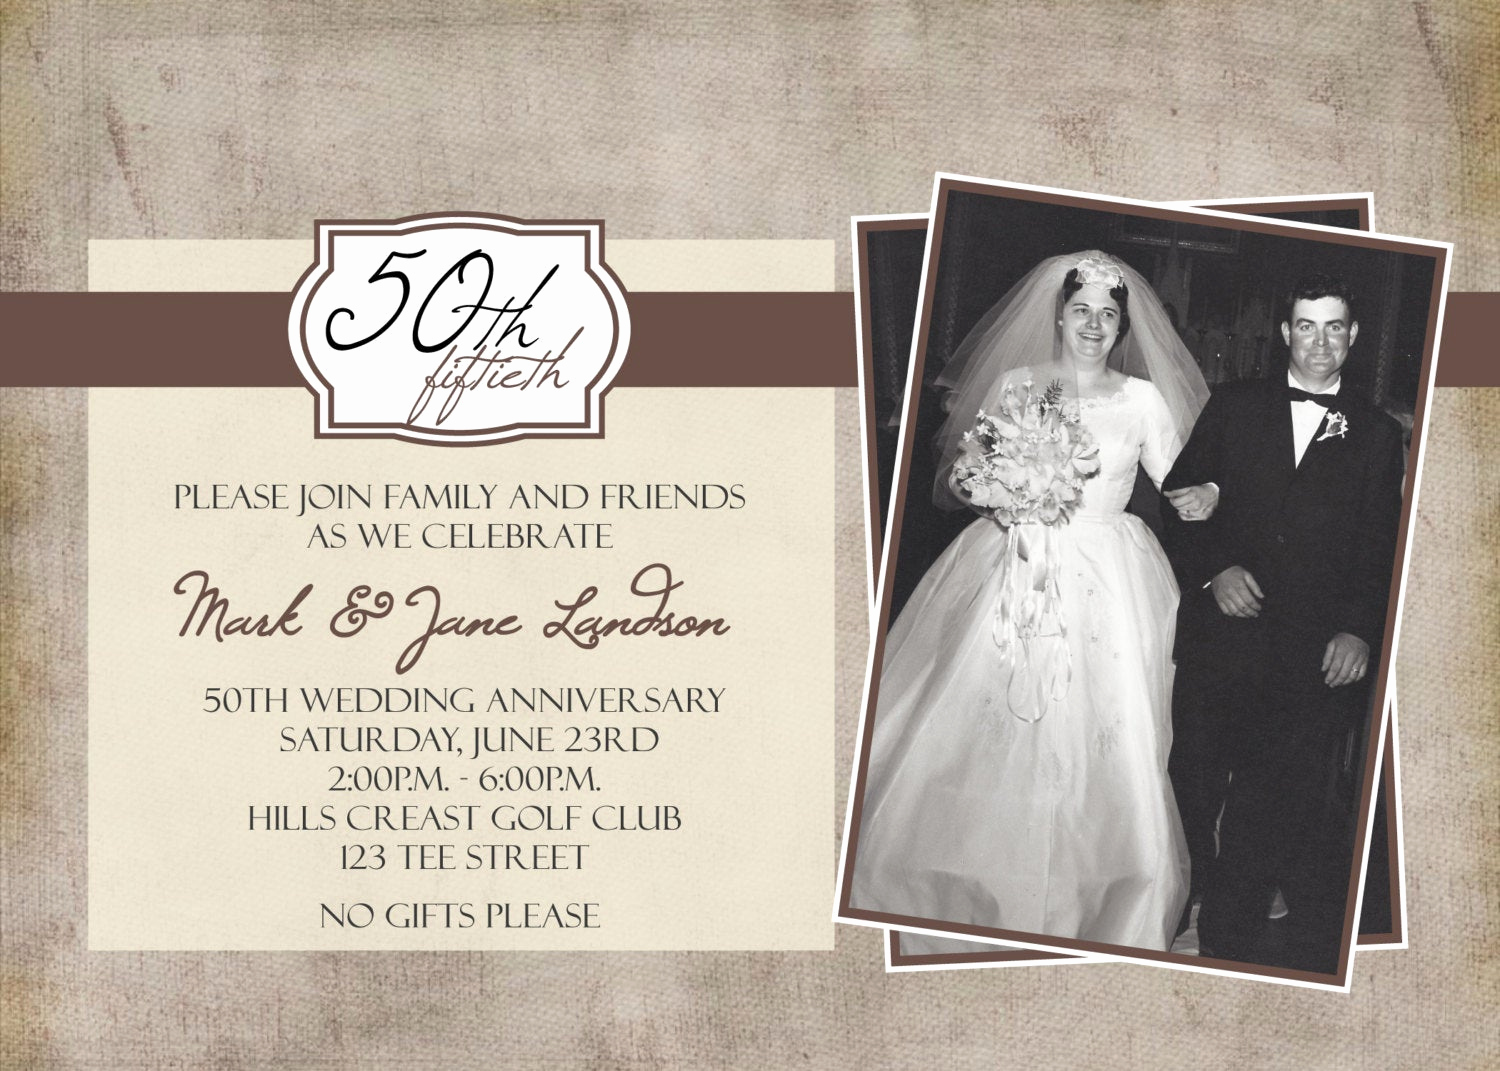 50th Wedding Anniversary Invitation Wording Best Of 50th Anniversary Party Printable Invitation